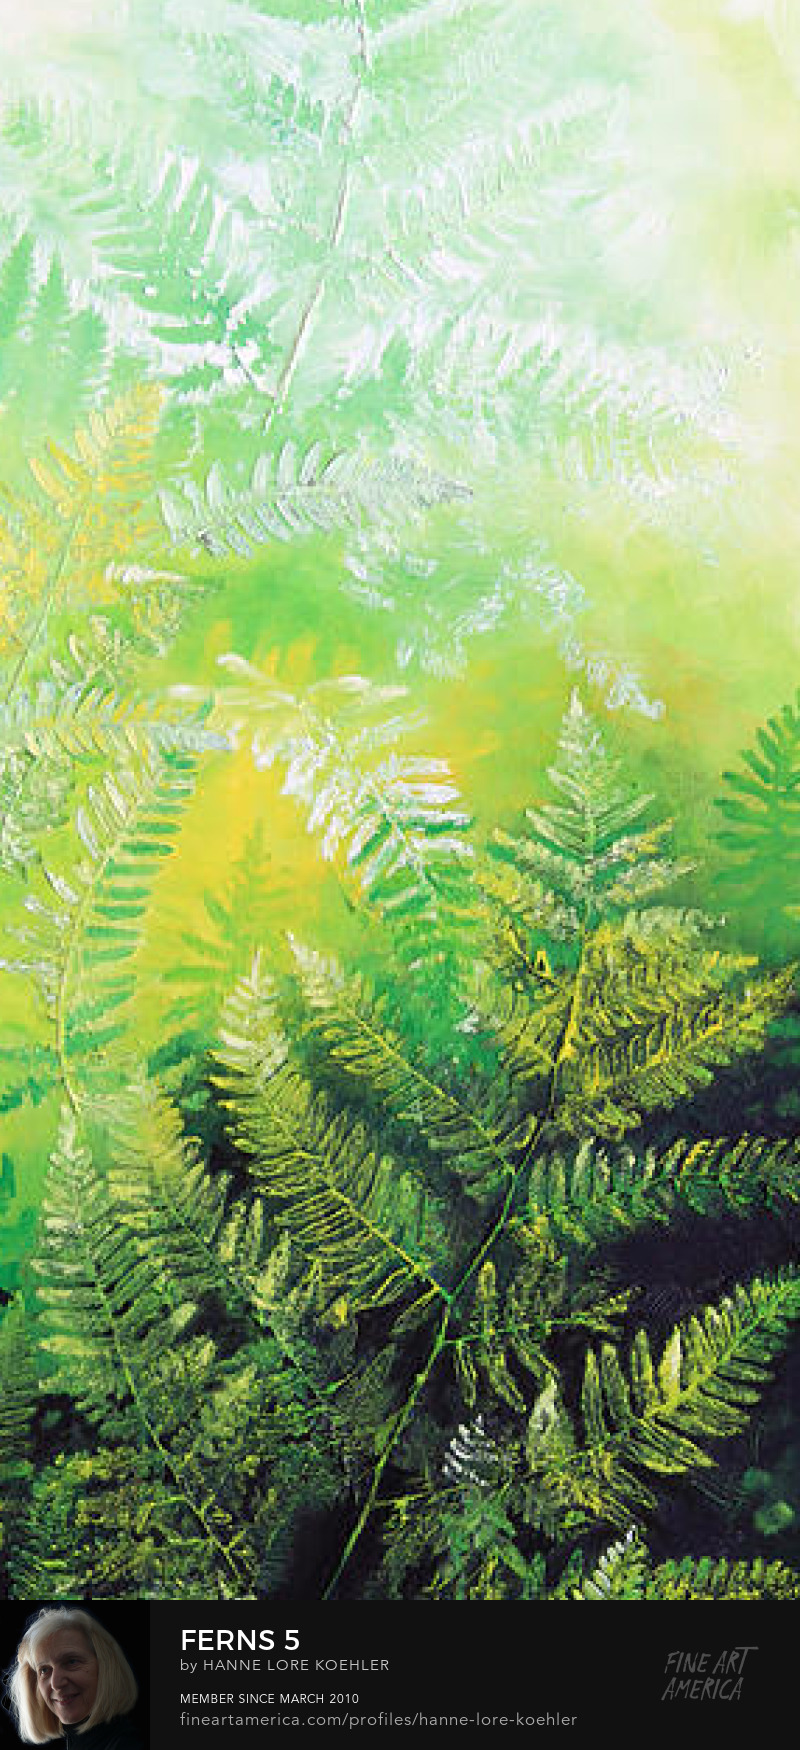 buy 5-canvas fern painting online